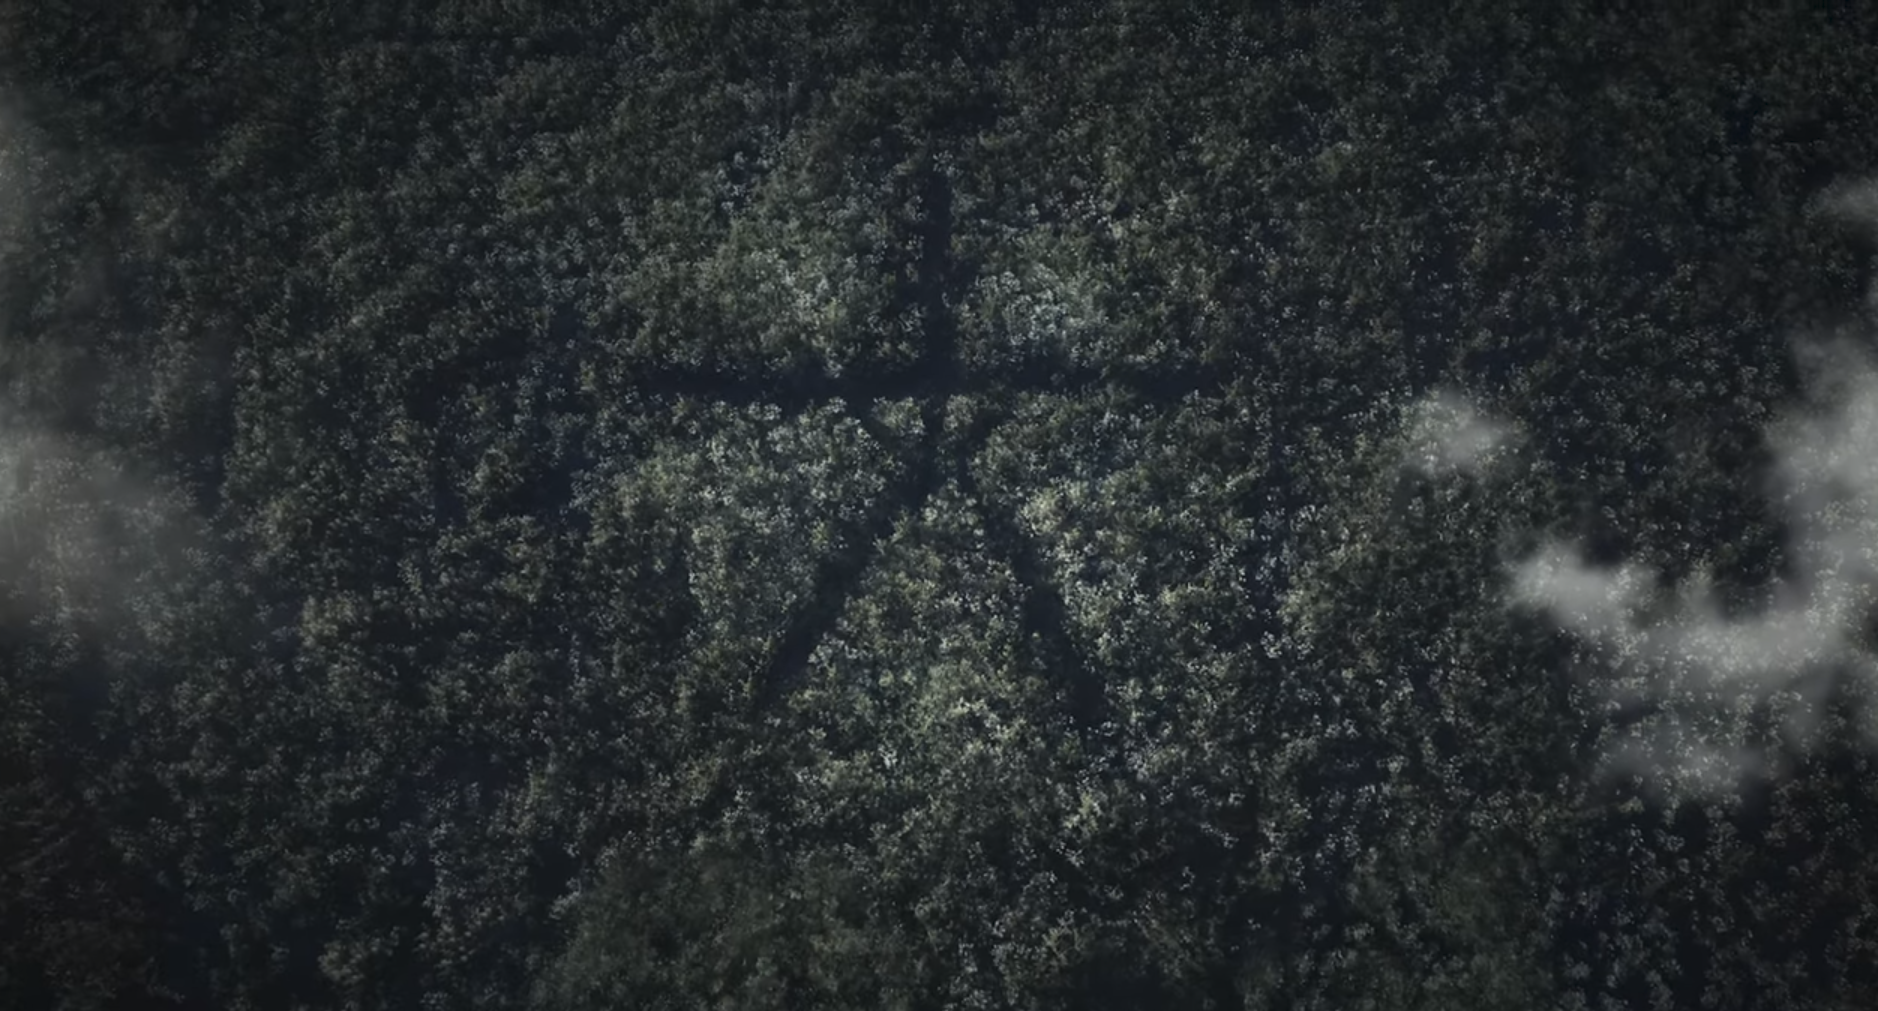 Blair Witch game: Release date, trailer, and everything we